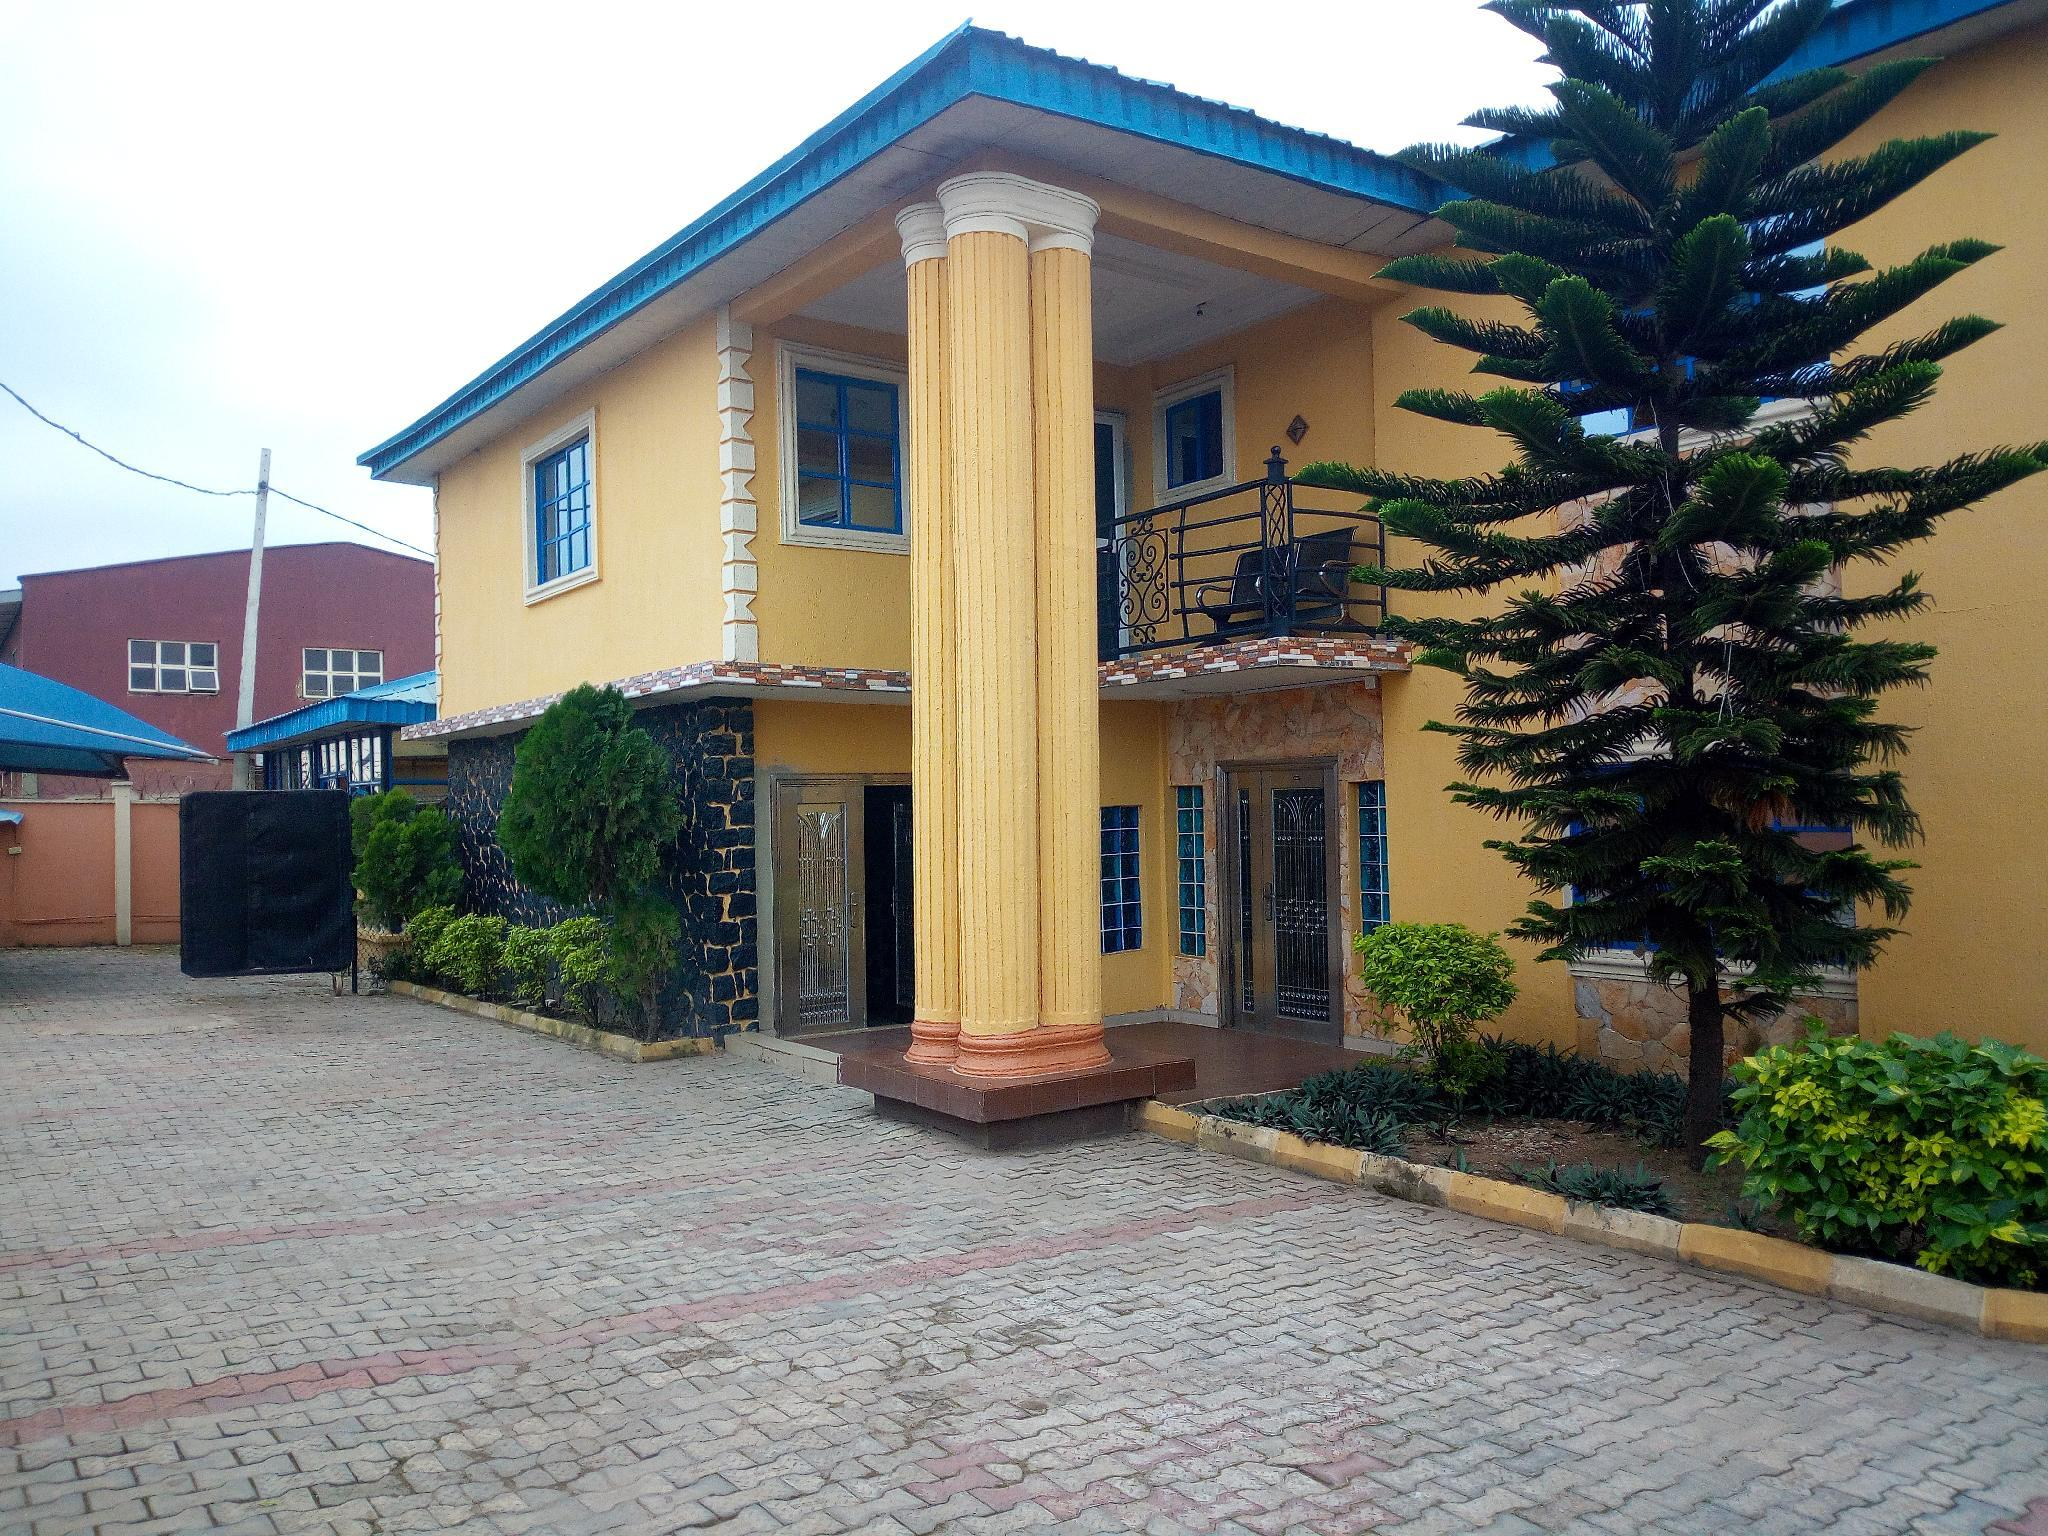 Joybam Hotel and Events Center, Ososami, IbadanSouth-West